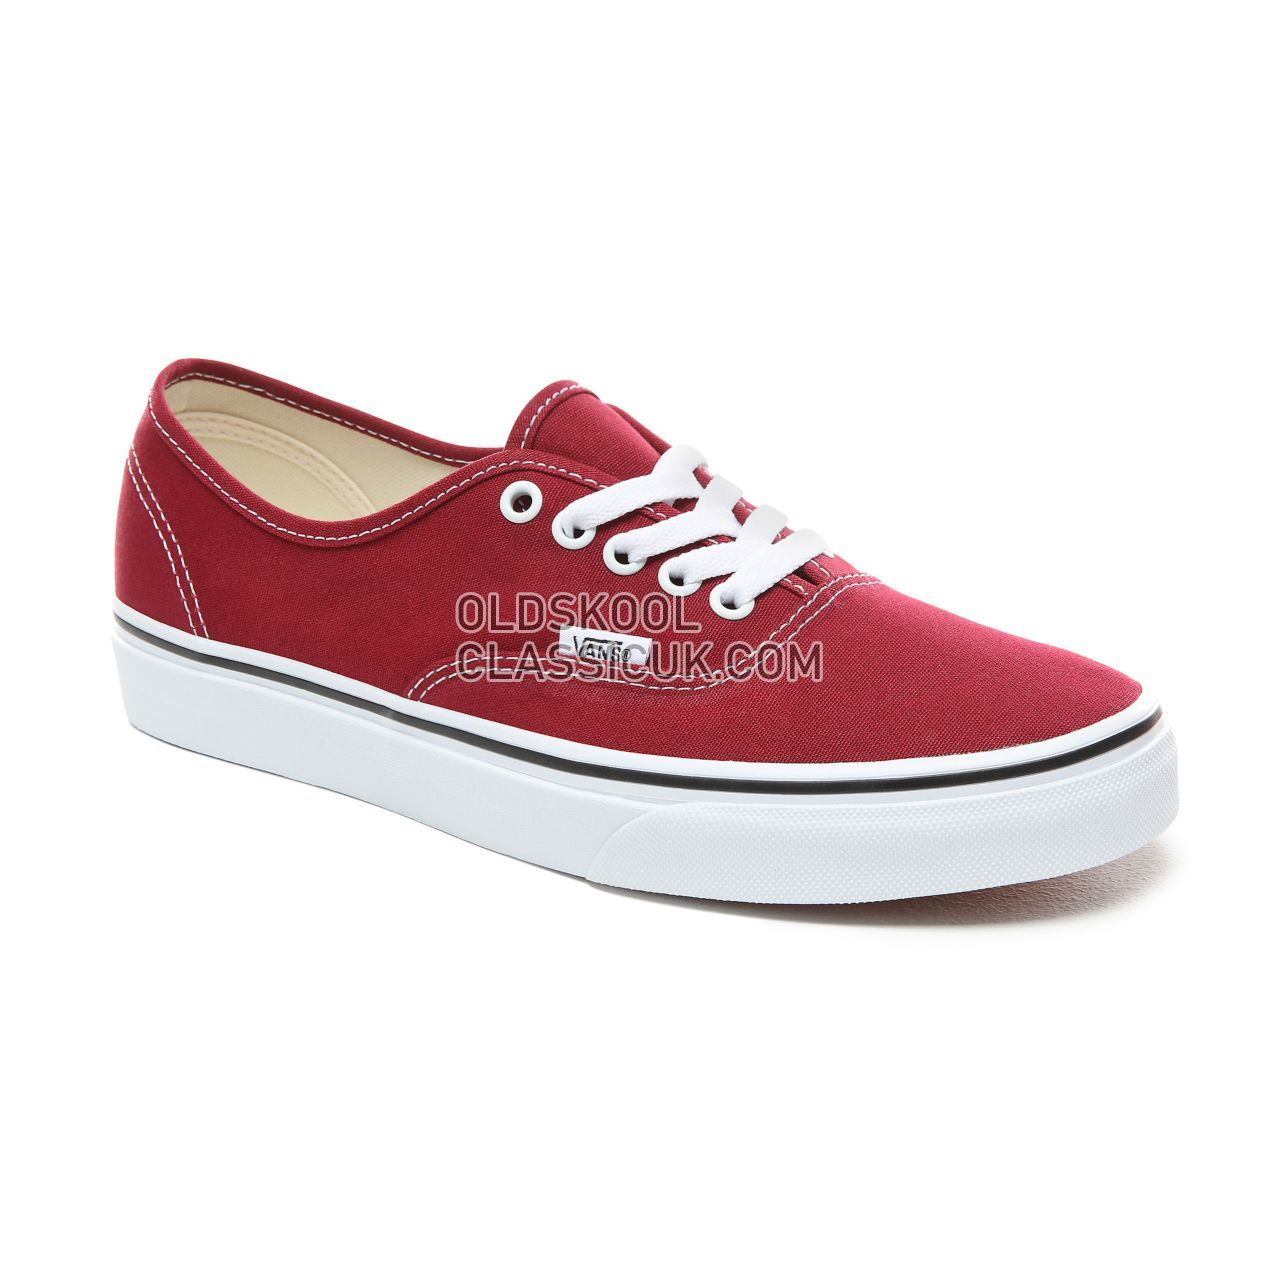 Vans Authentic  Sneakers Mens Rumba Red/True White VN0A38EMVG4 Shoes